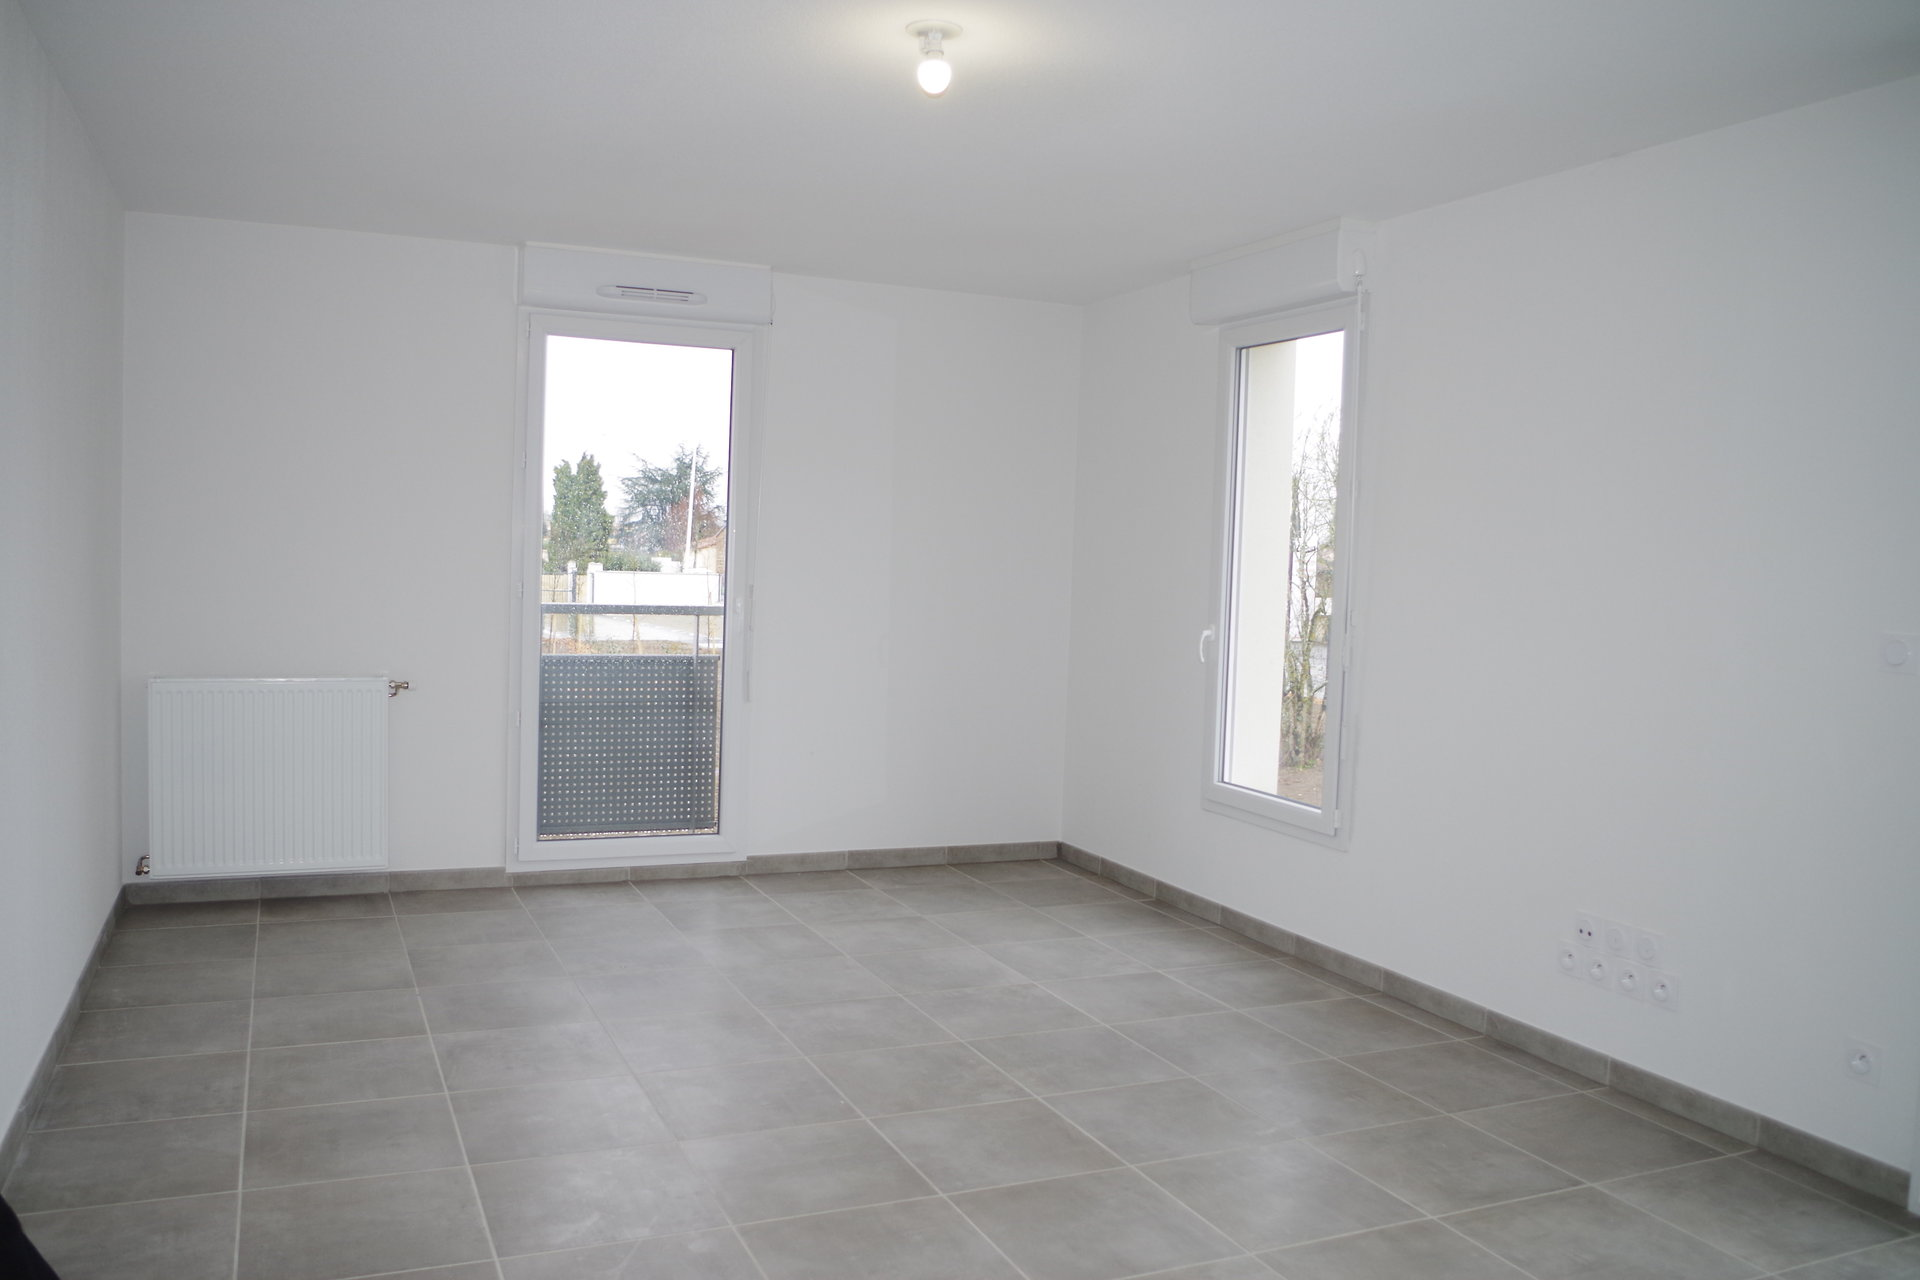 Appartement T3 - 65 m² - TOURNEFEUILLE